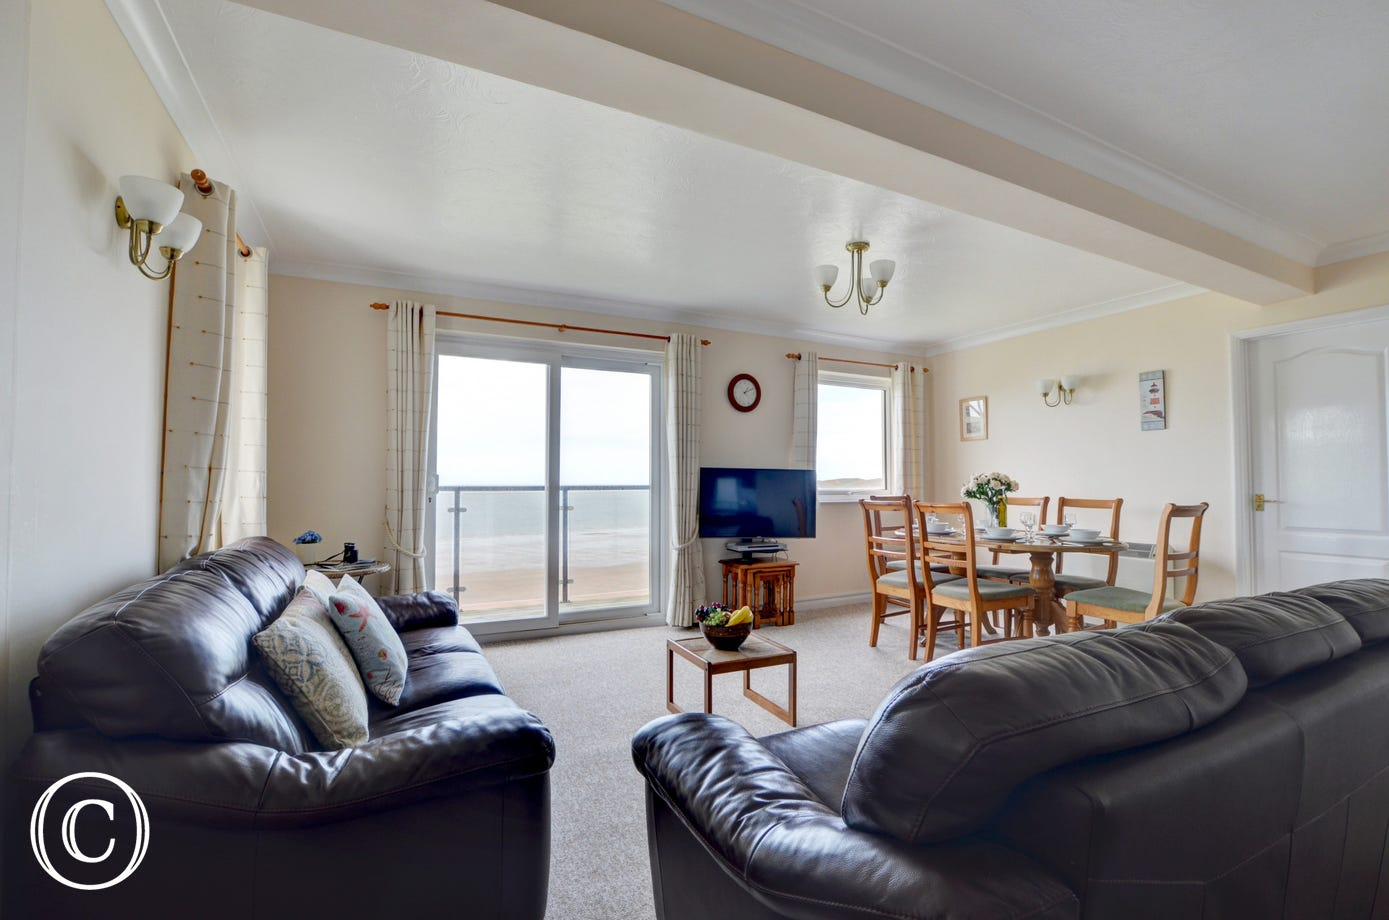 The spacious open plan living/kitchen area includes comfortable sofas and a dining area